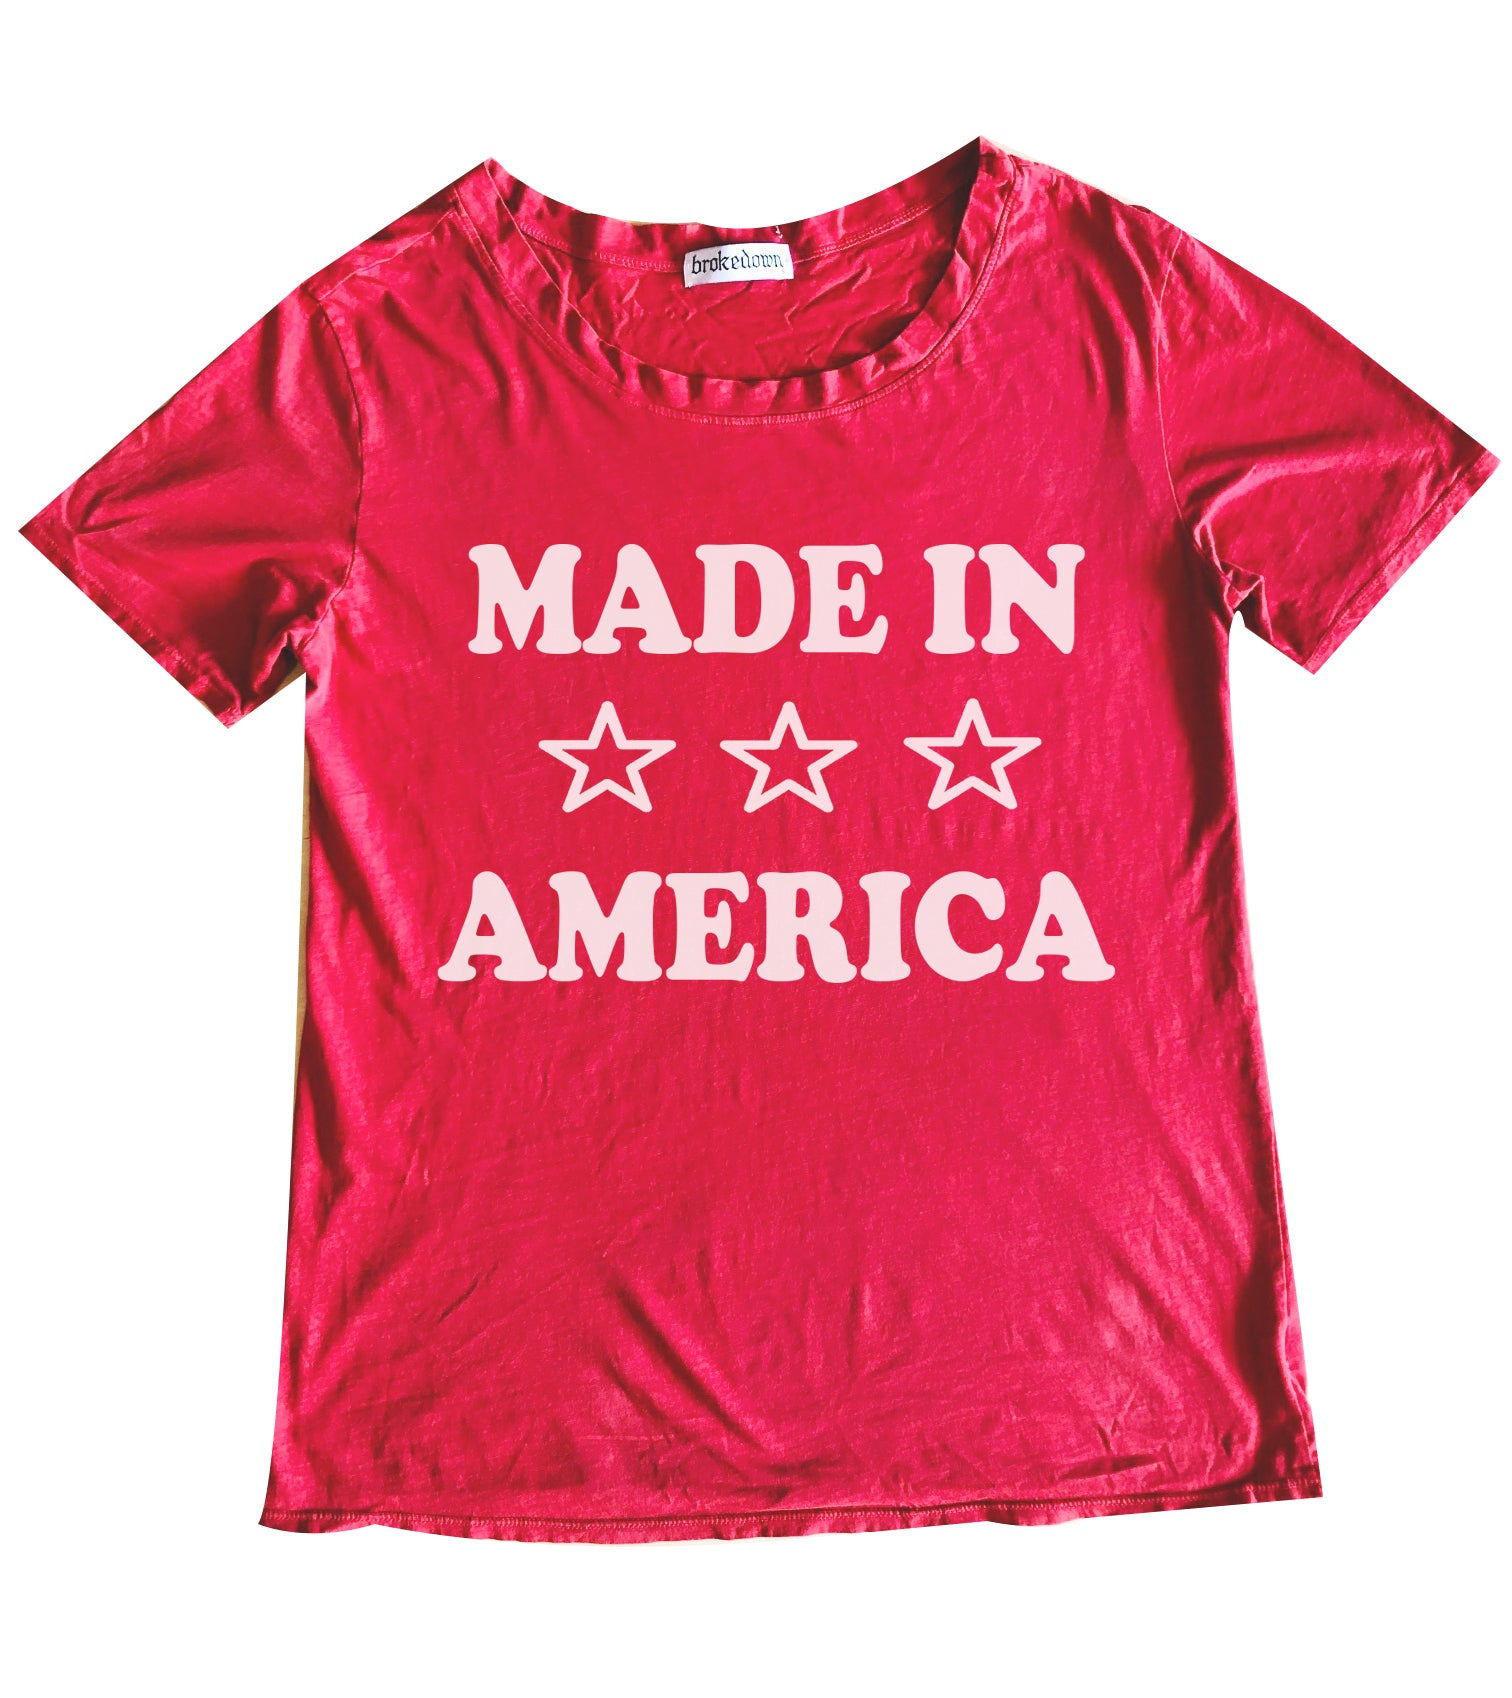 Made in America Women's Tee